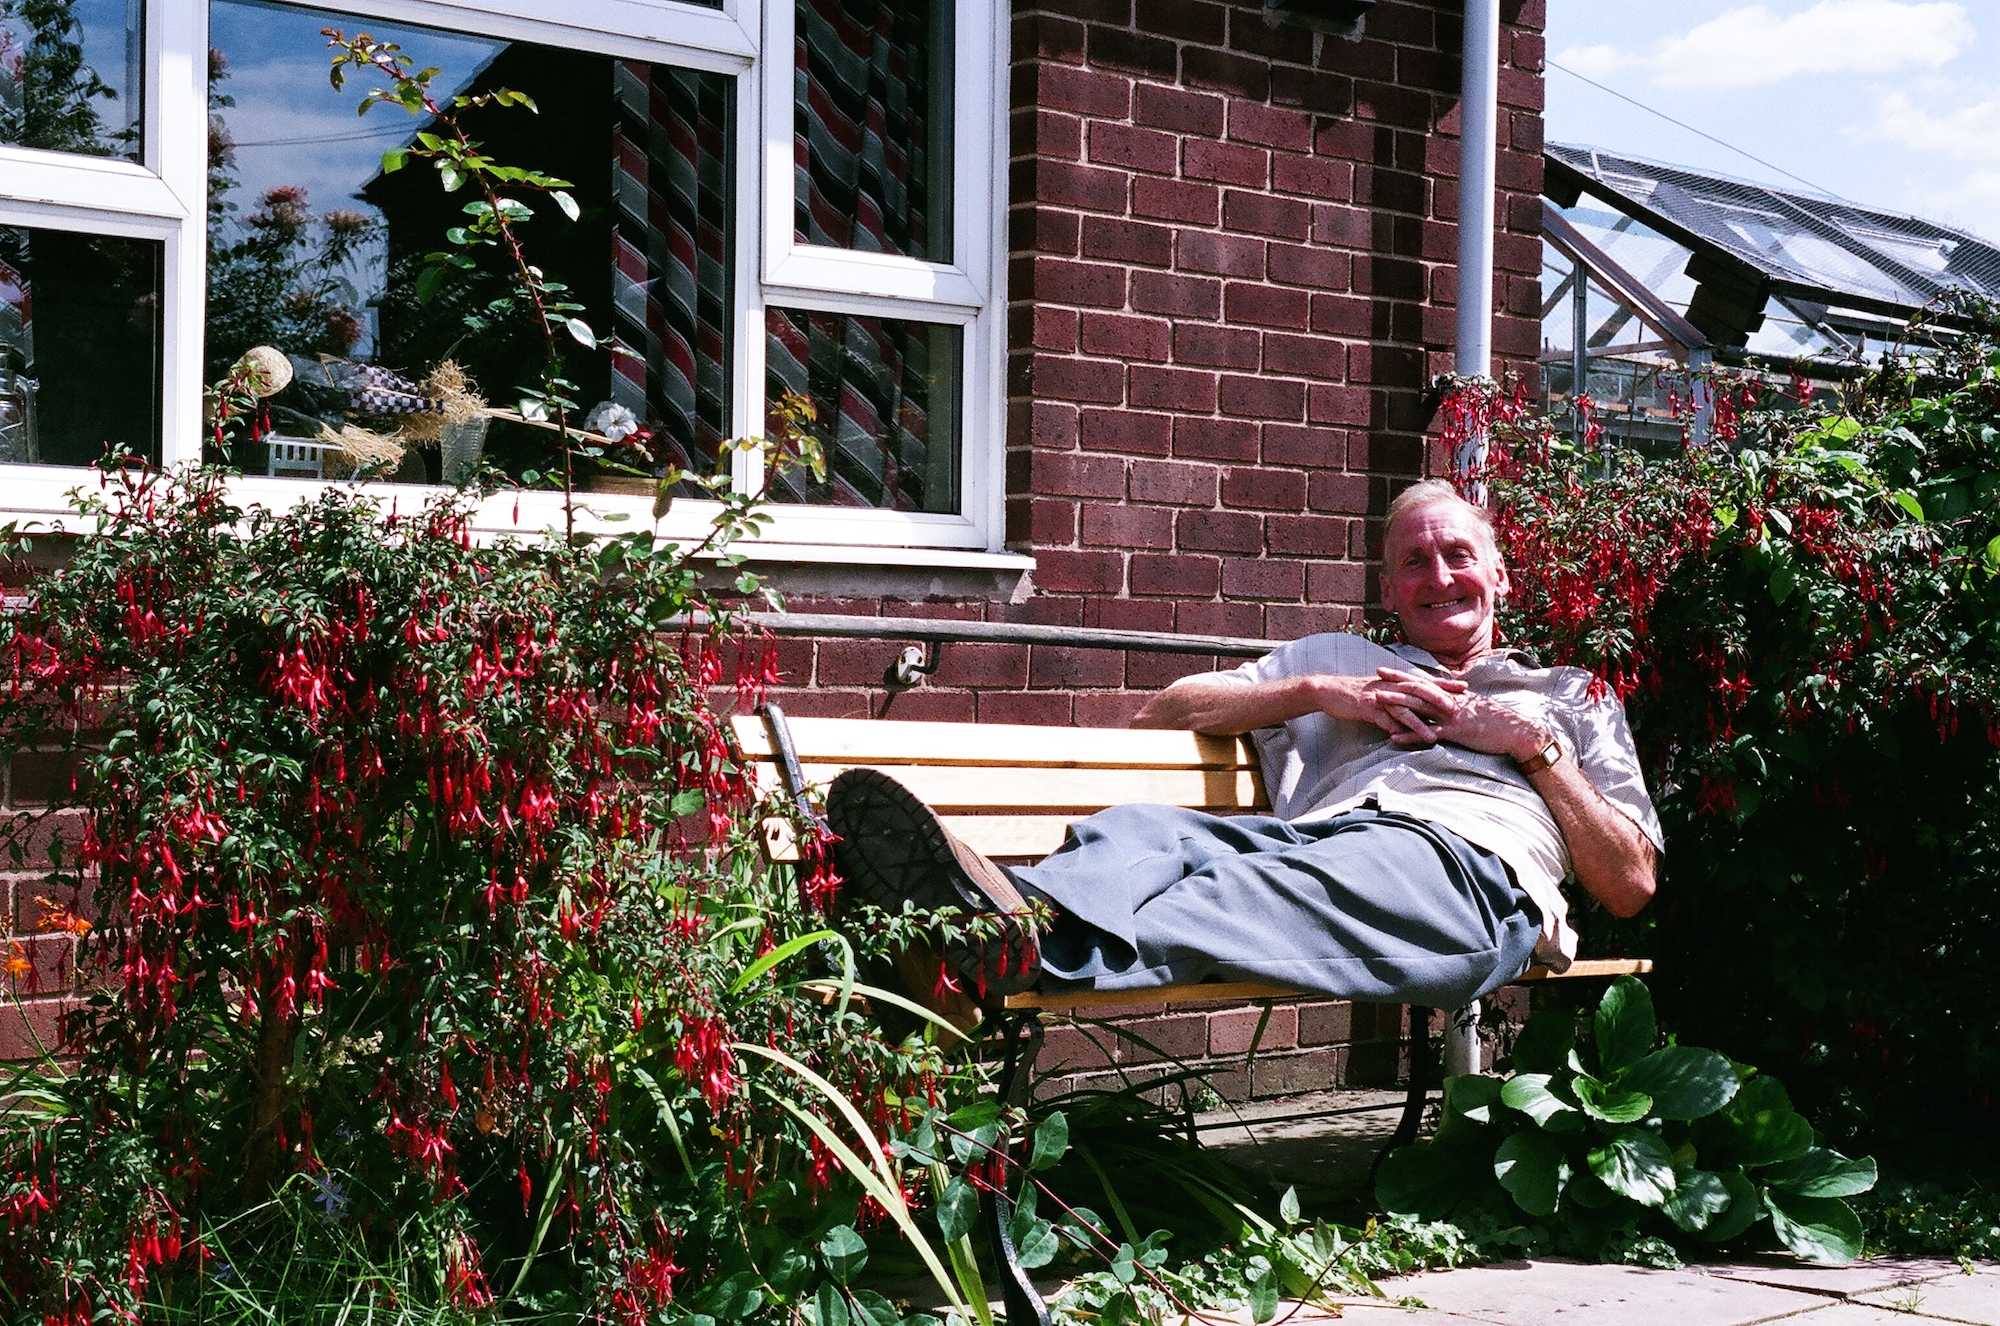 Graham Burton, outside his neighbour prefab, 2005. Post-war prefabs in Chesterfield and North Wingfield, Derbyshire, 2005